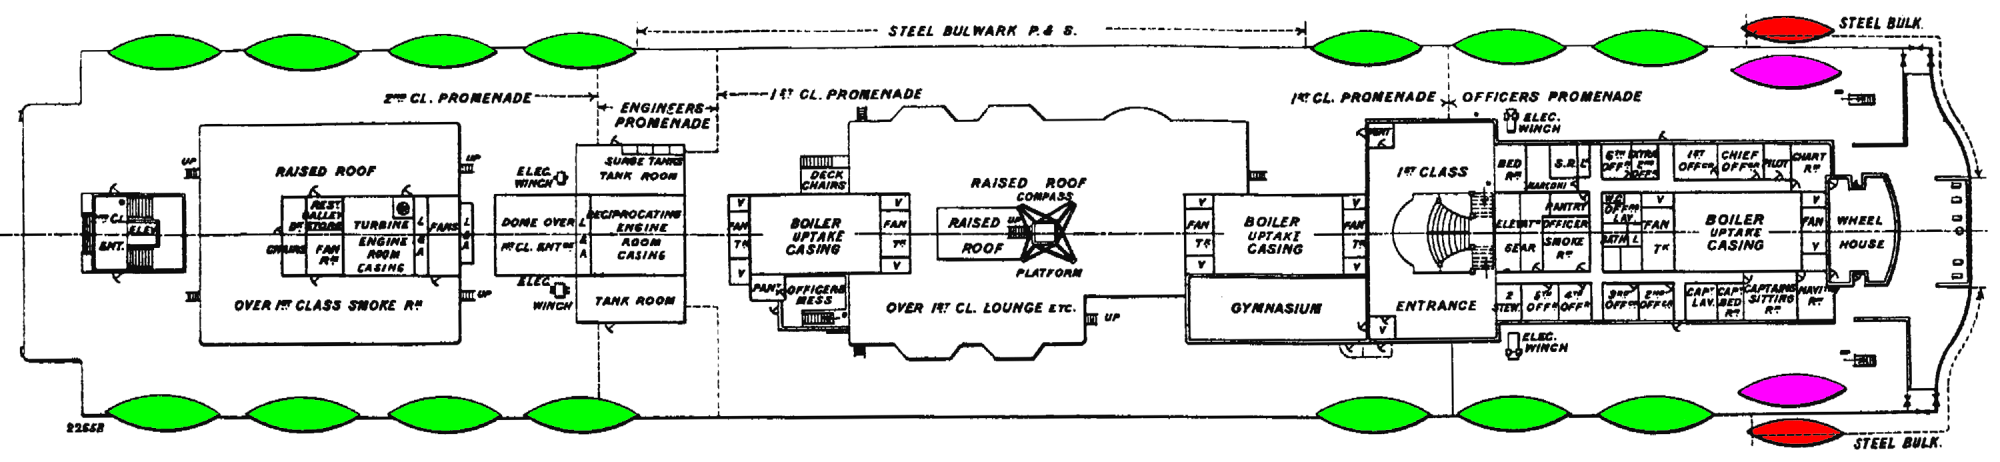 hight resolution of file titanic boat deck plan with lifeboats png